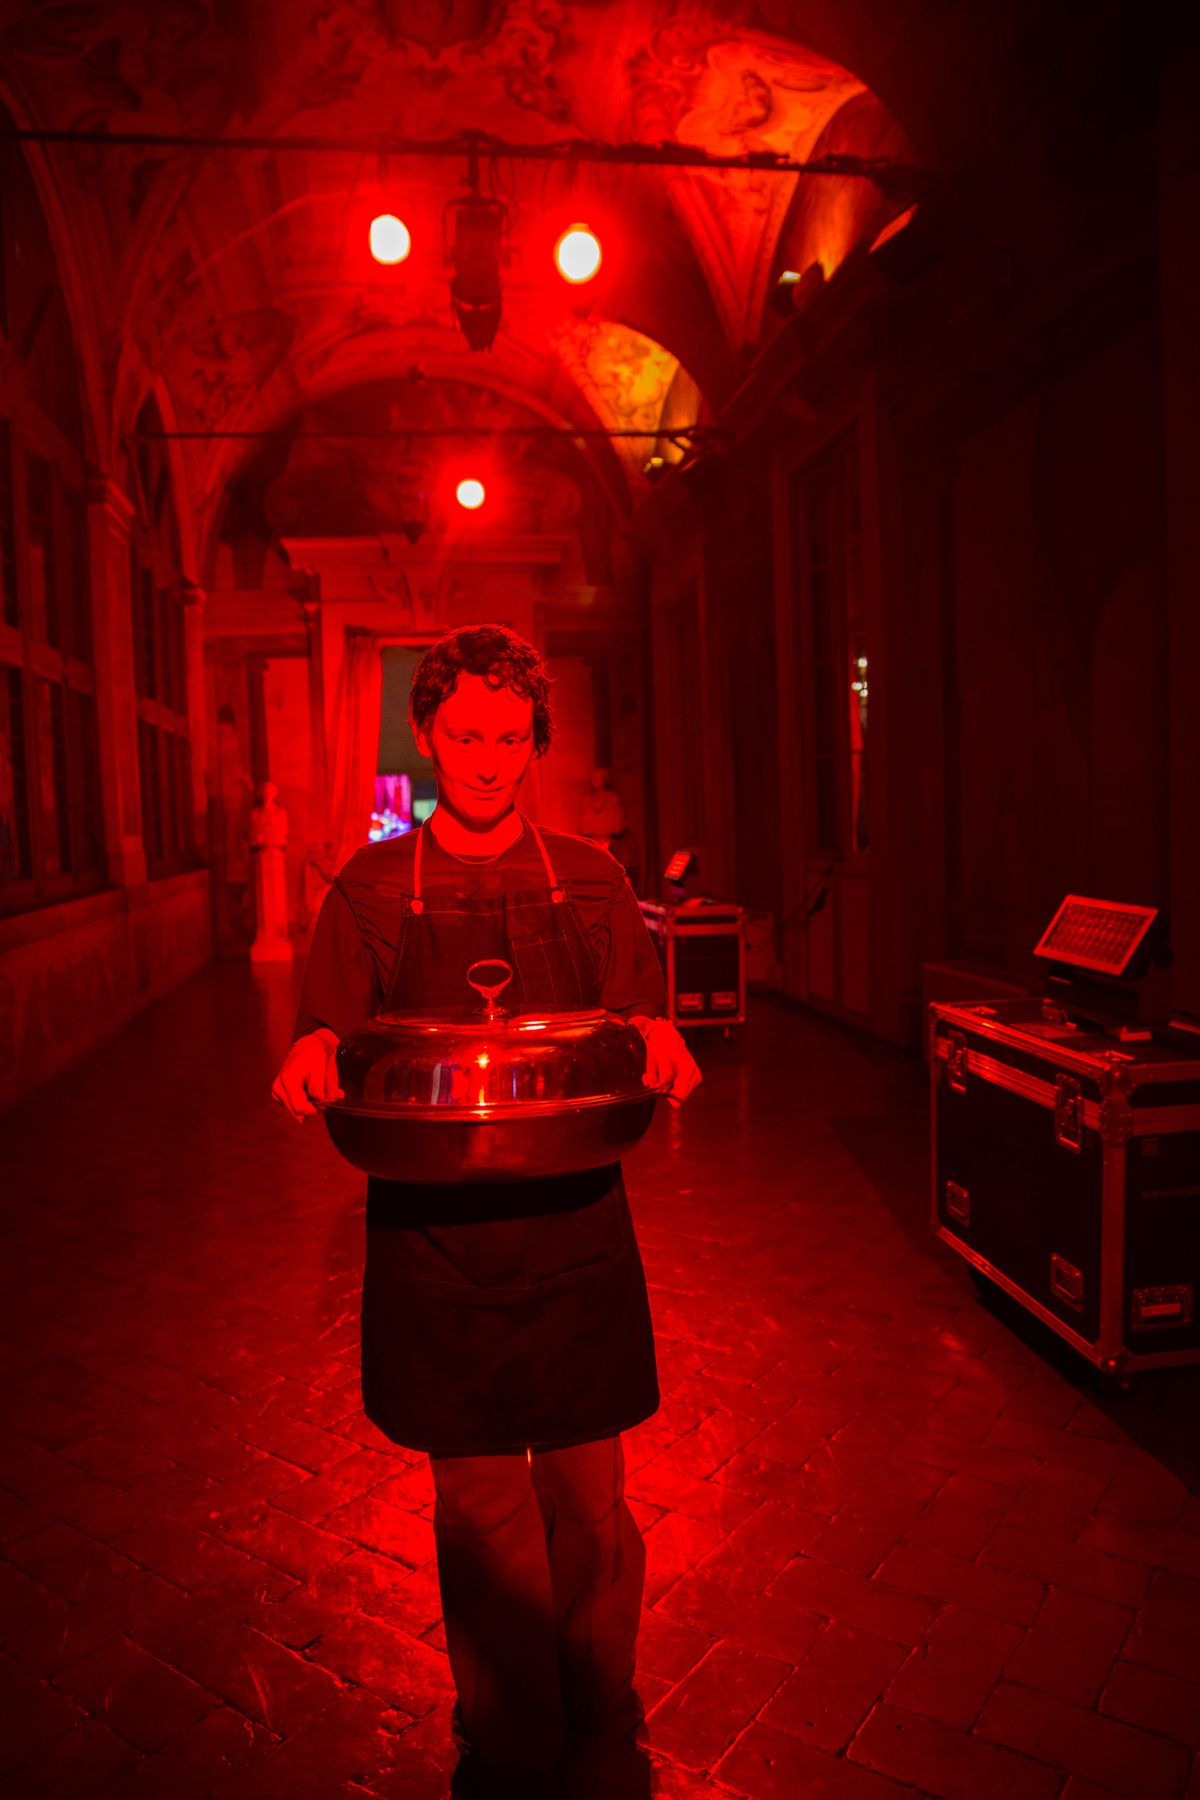 Person walks down a red hallway carrying a large covered pot.